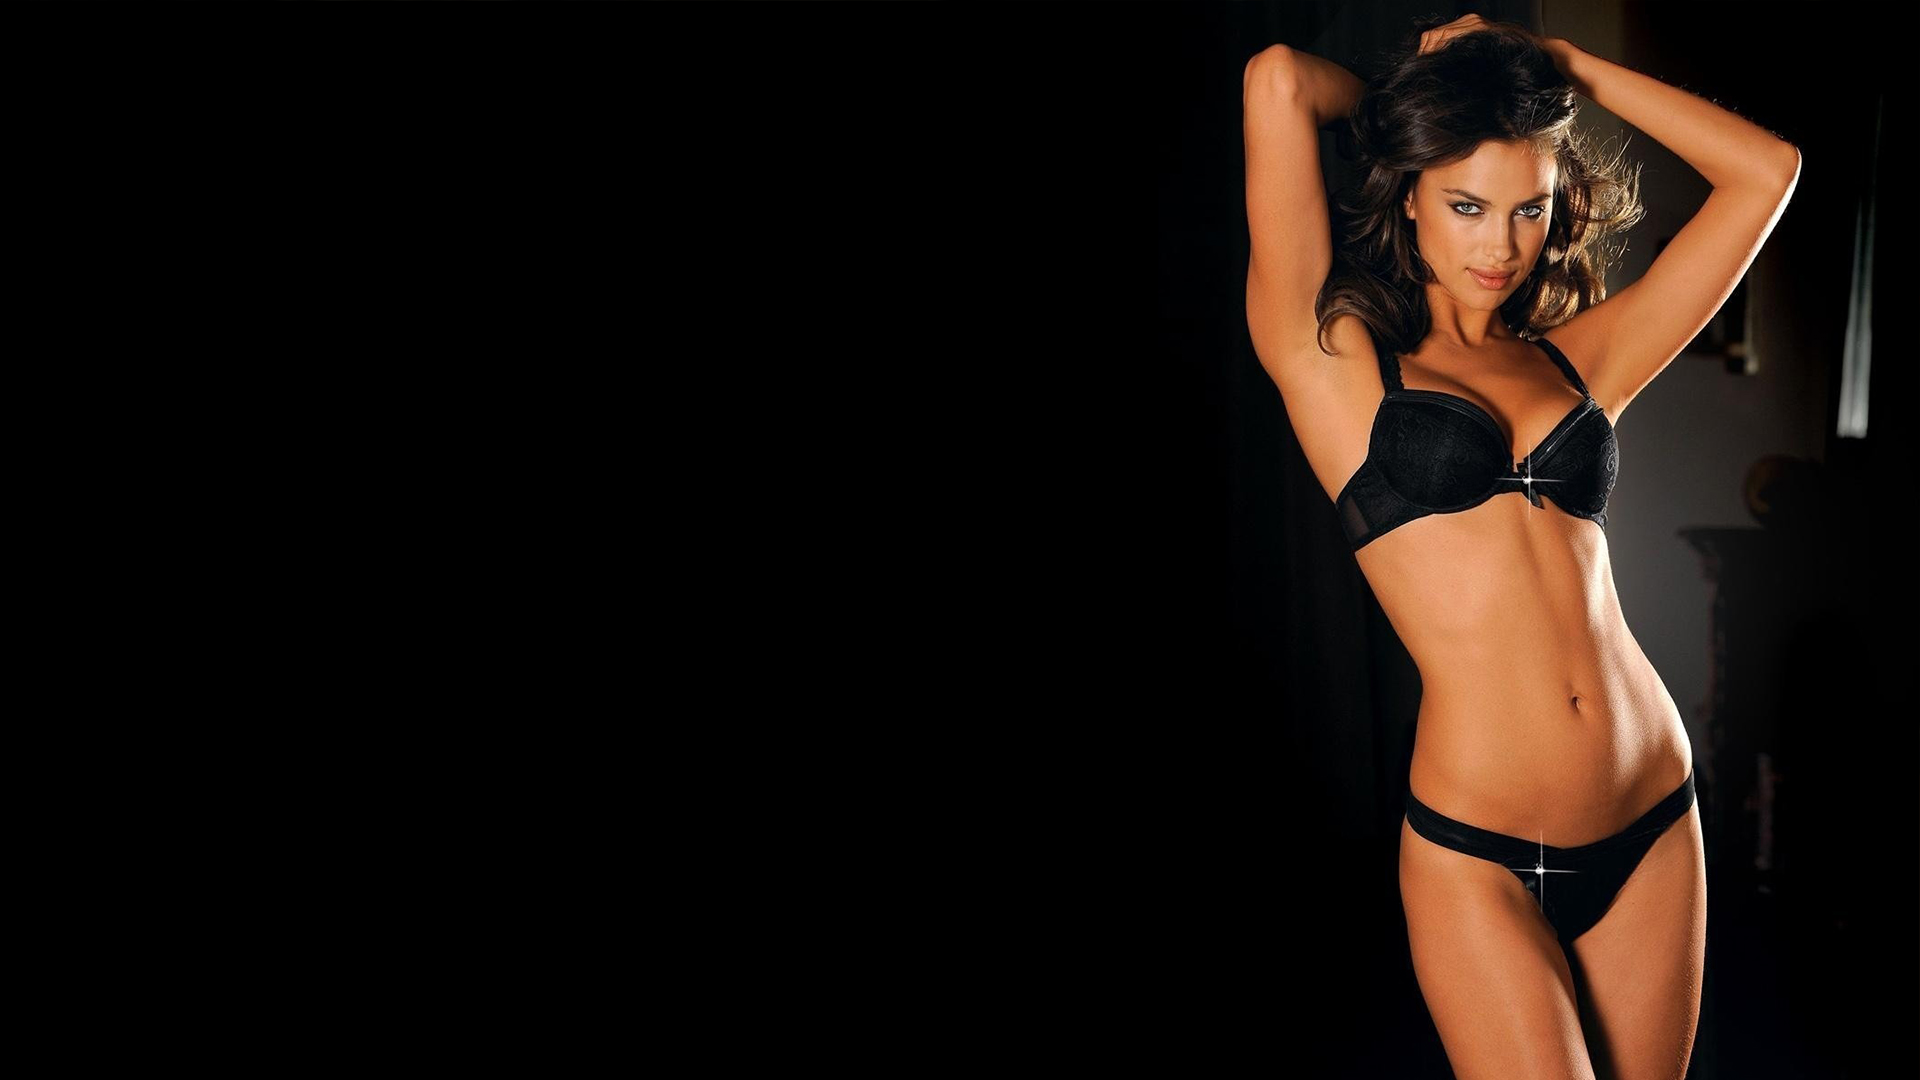 Hot Chick Hd Wallpapers Group